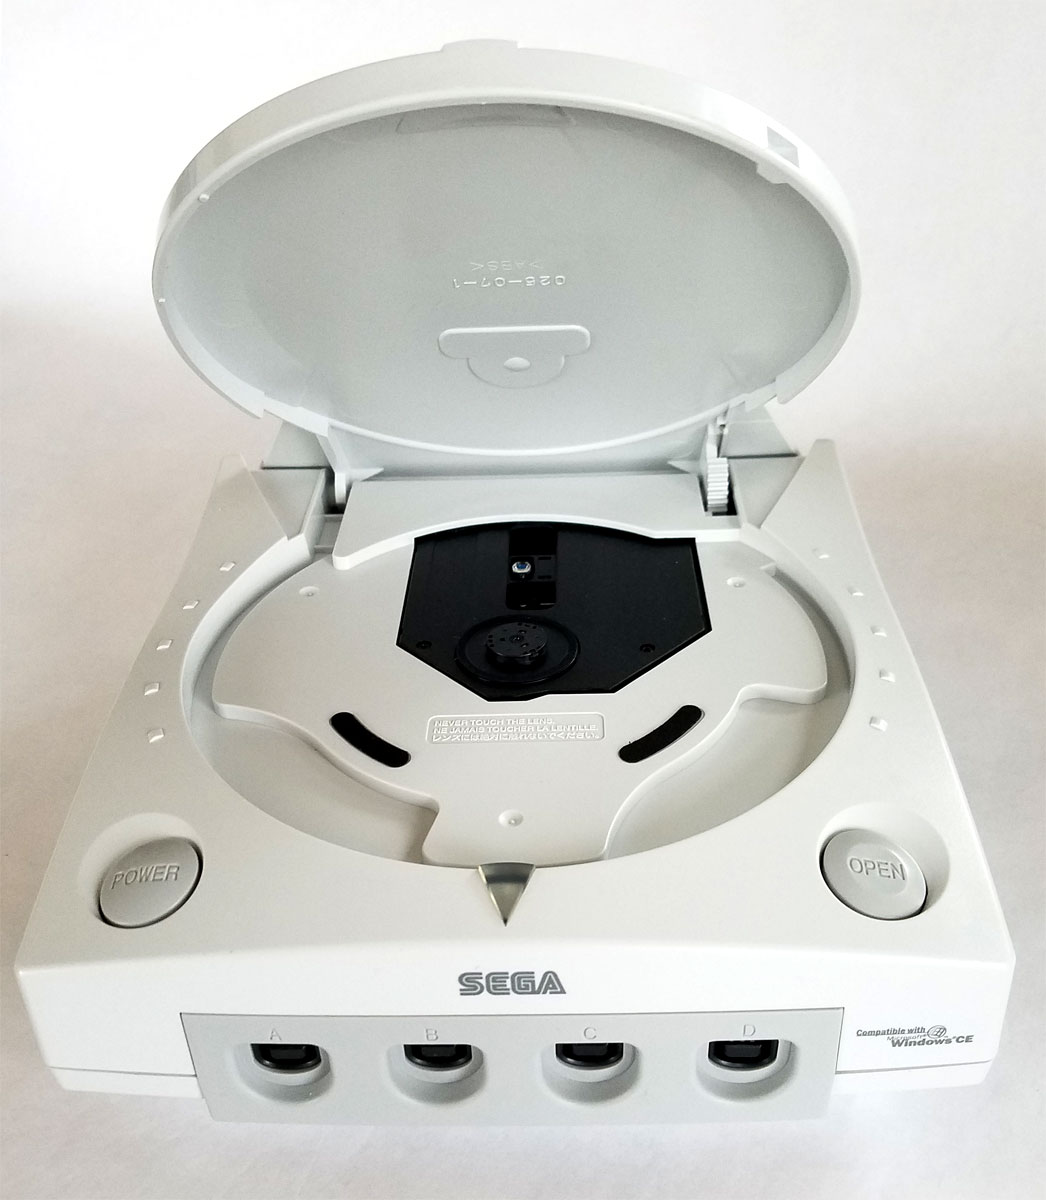 Sega's #Dreamcast was their last attempt to compete in the